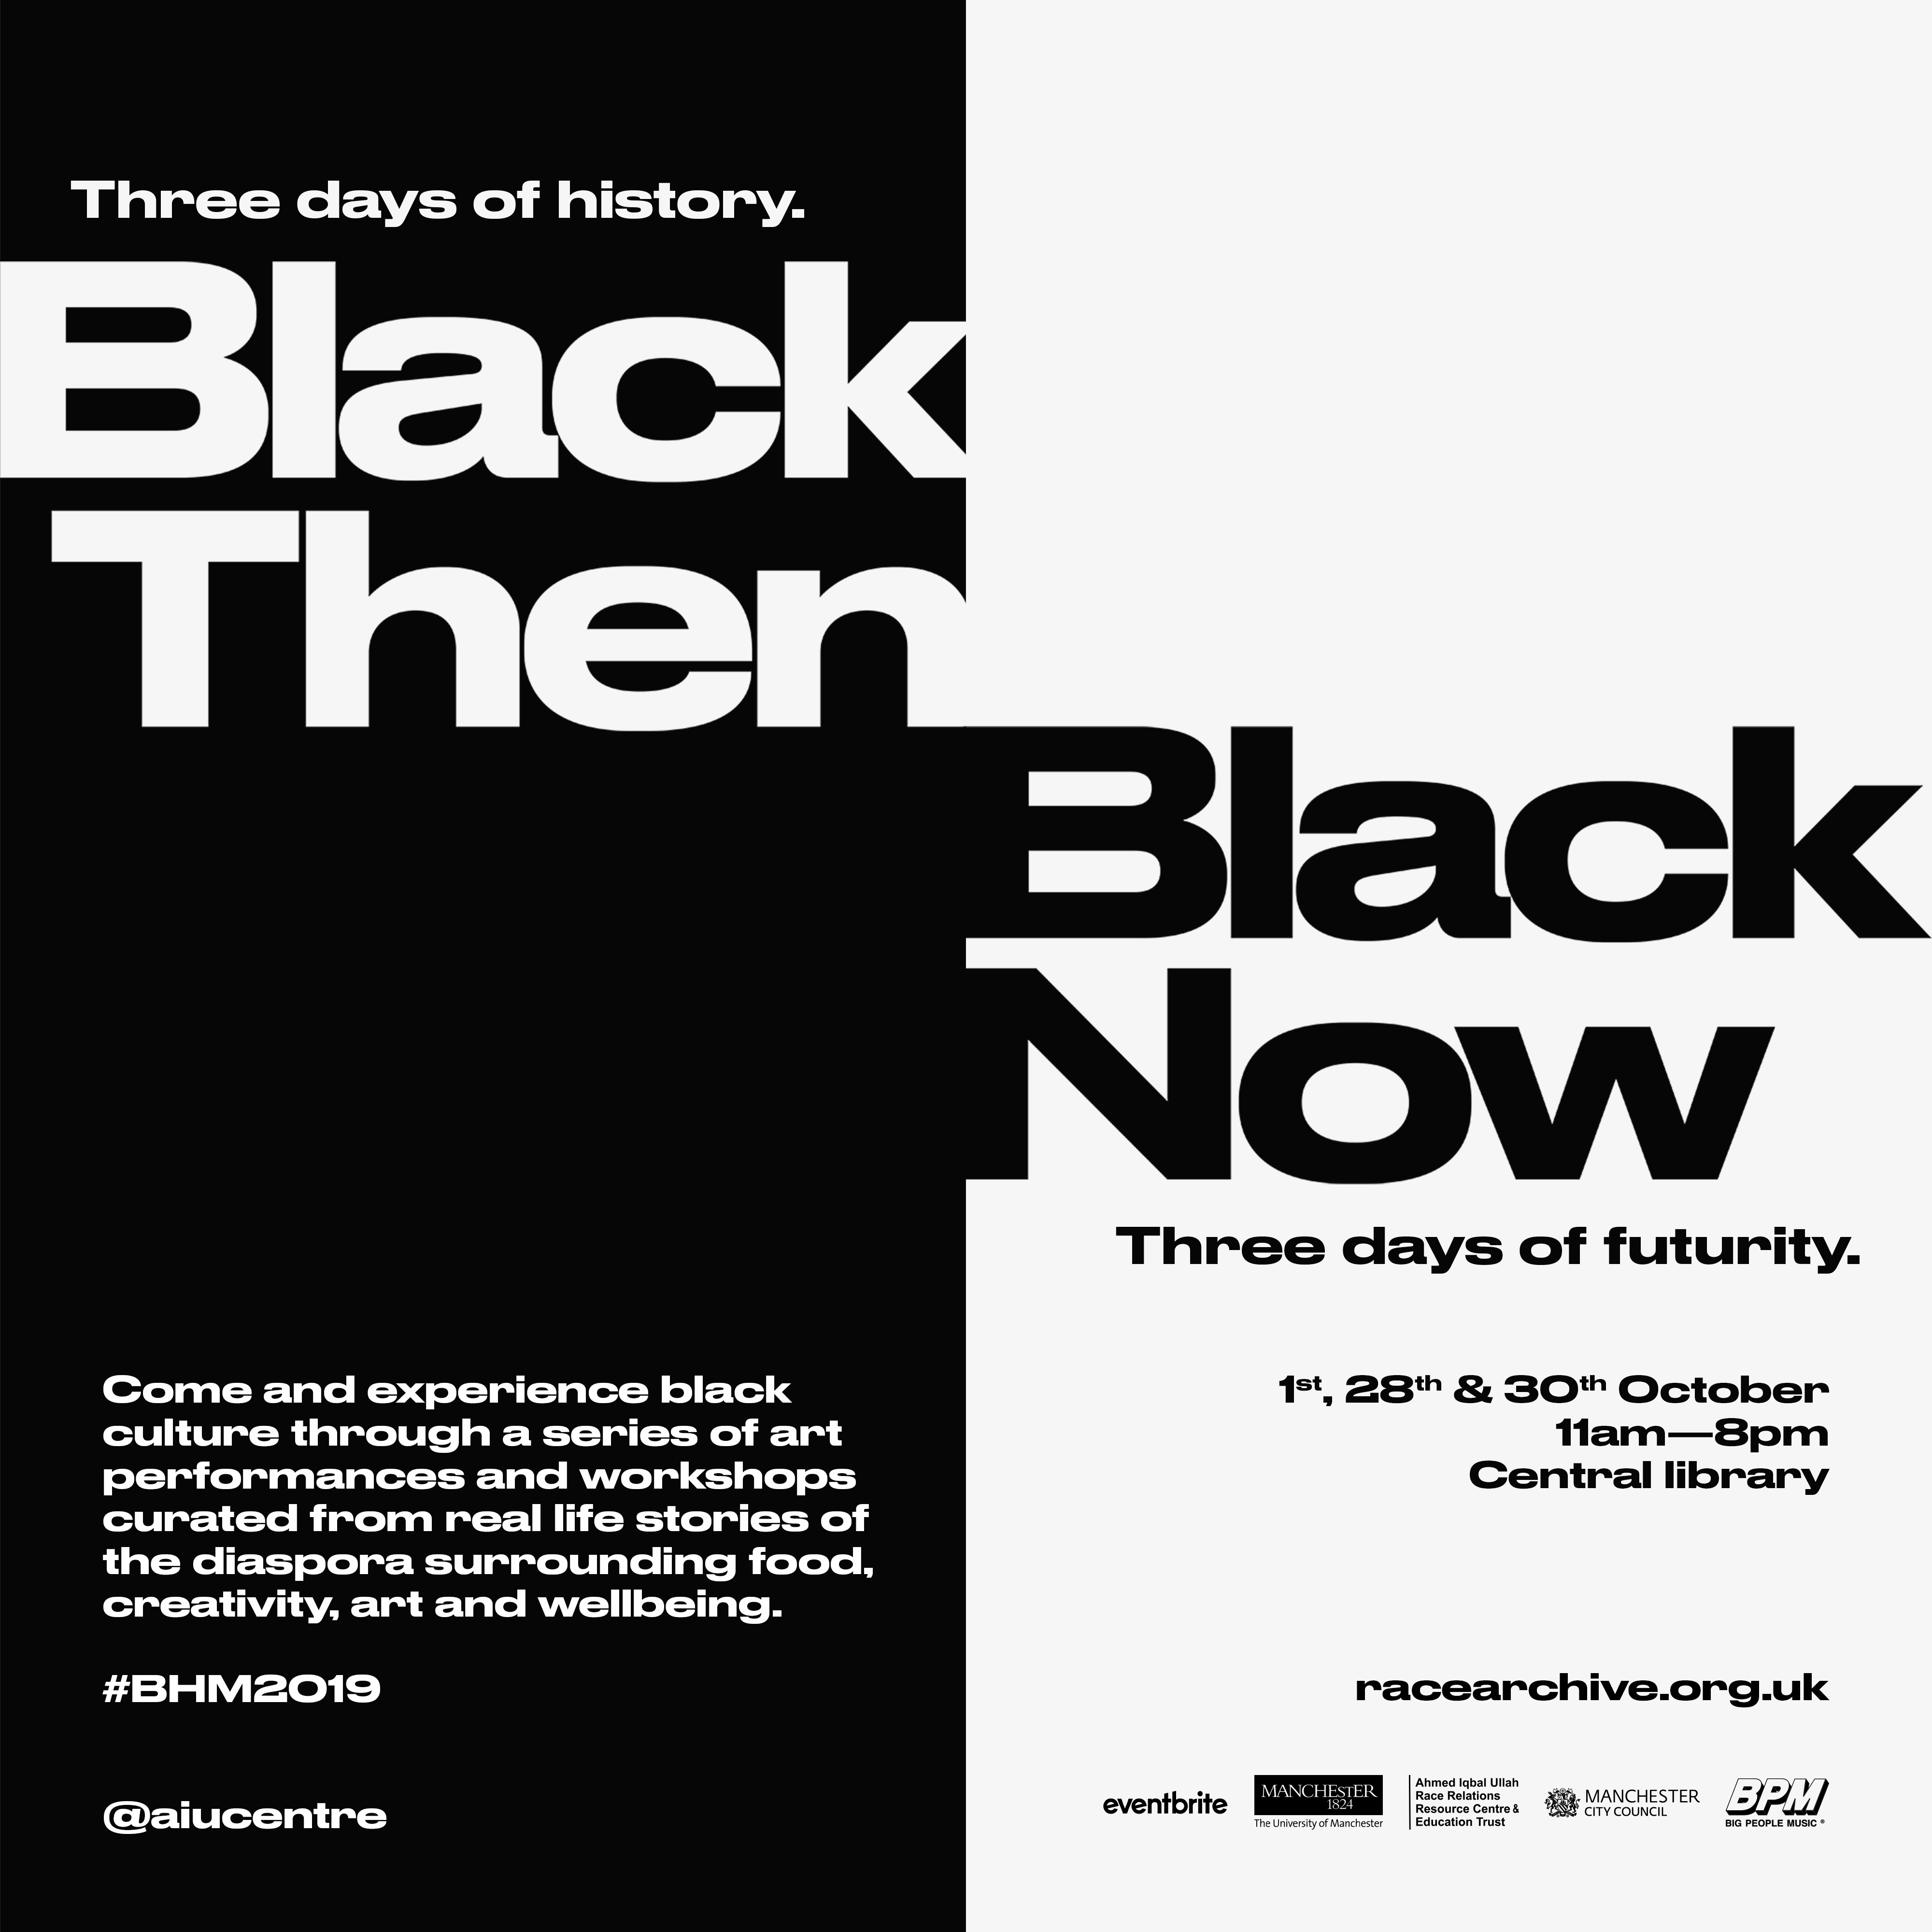 Poster for Black History Month 2019 Events